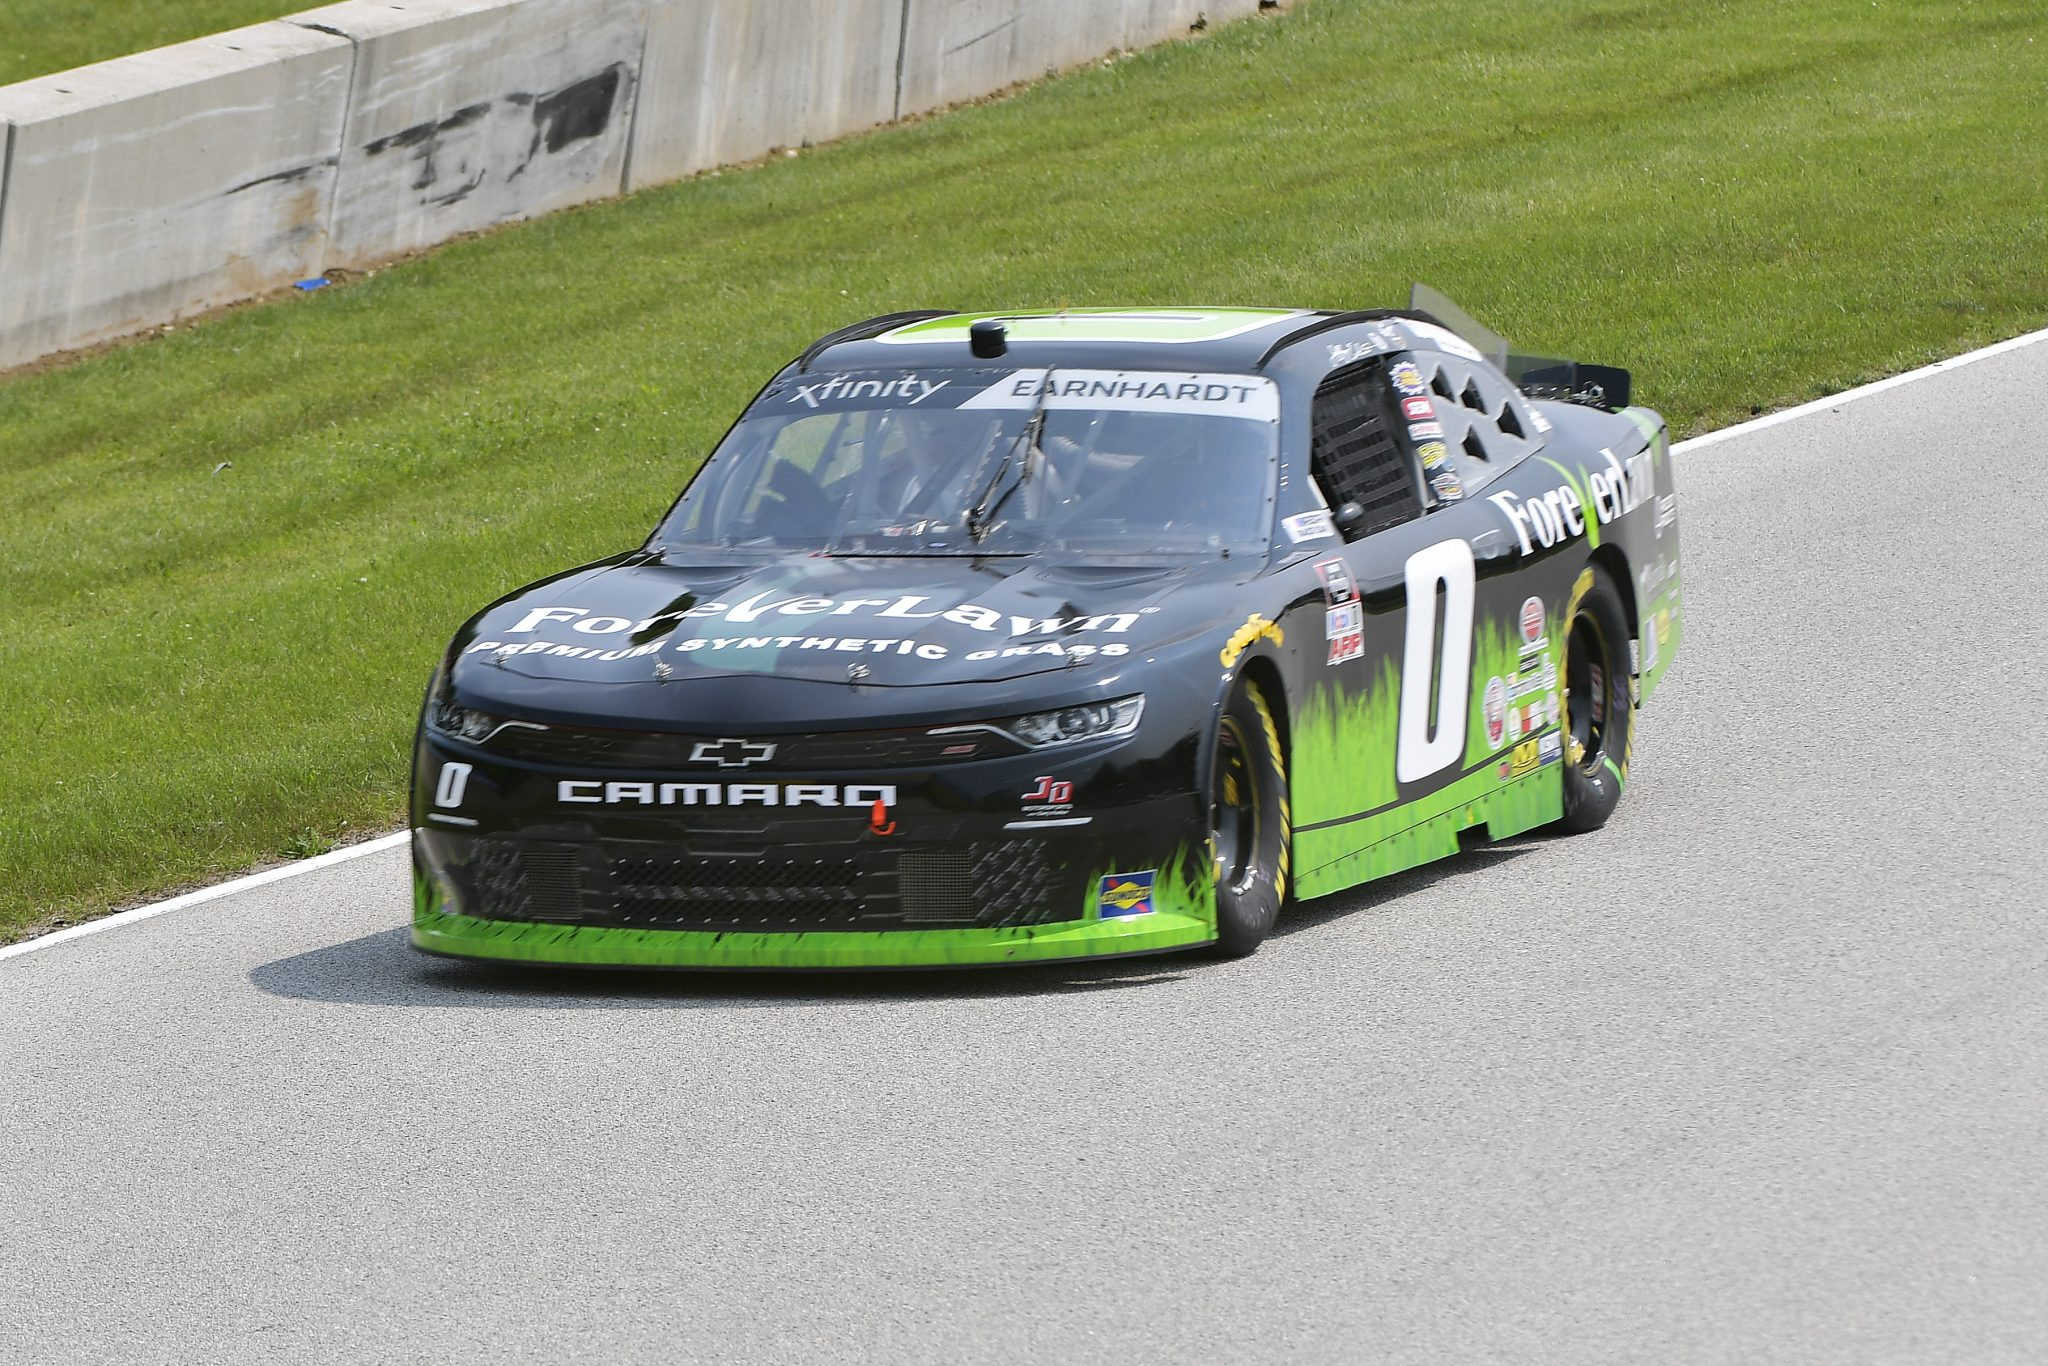 ELKHART LAKE, WISCONSIN - JULY 02: Jeffrey Earnhardt, driver of the #0 ForeverLawn Chevrolet, drives during practice for the NASCAR Xfinity Series Henry 180 at Road America on July 02, 2021 in Elkhart Lake, Wisconsin. (Photo by Logan Riely/Getty Images) | Getty Images